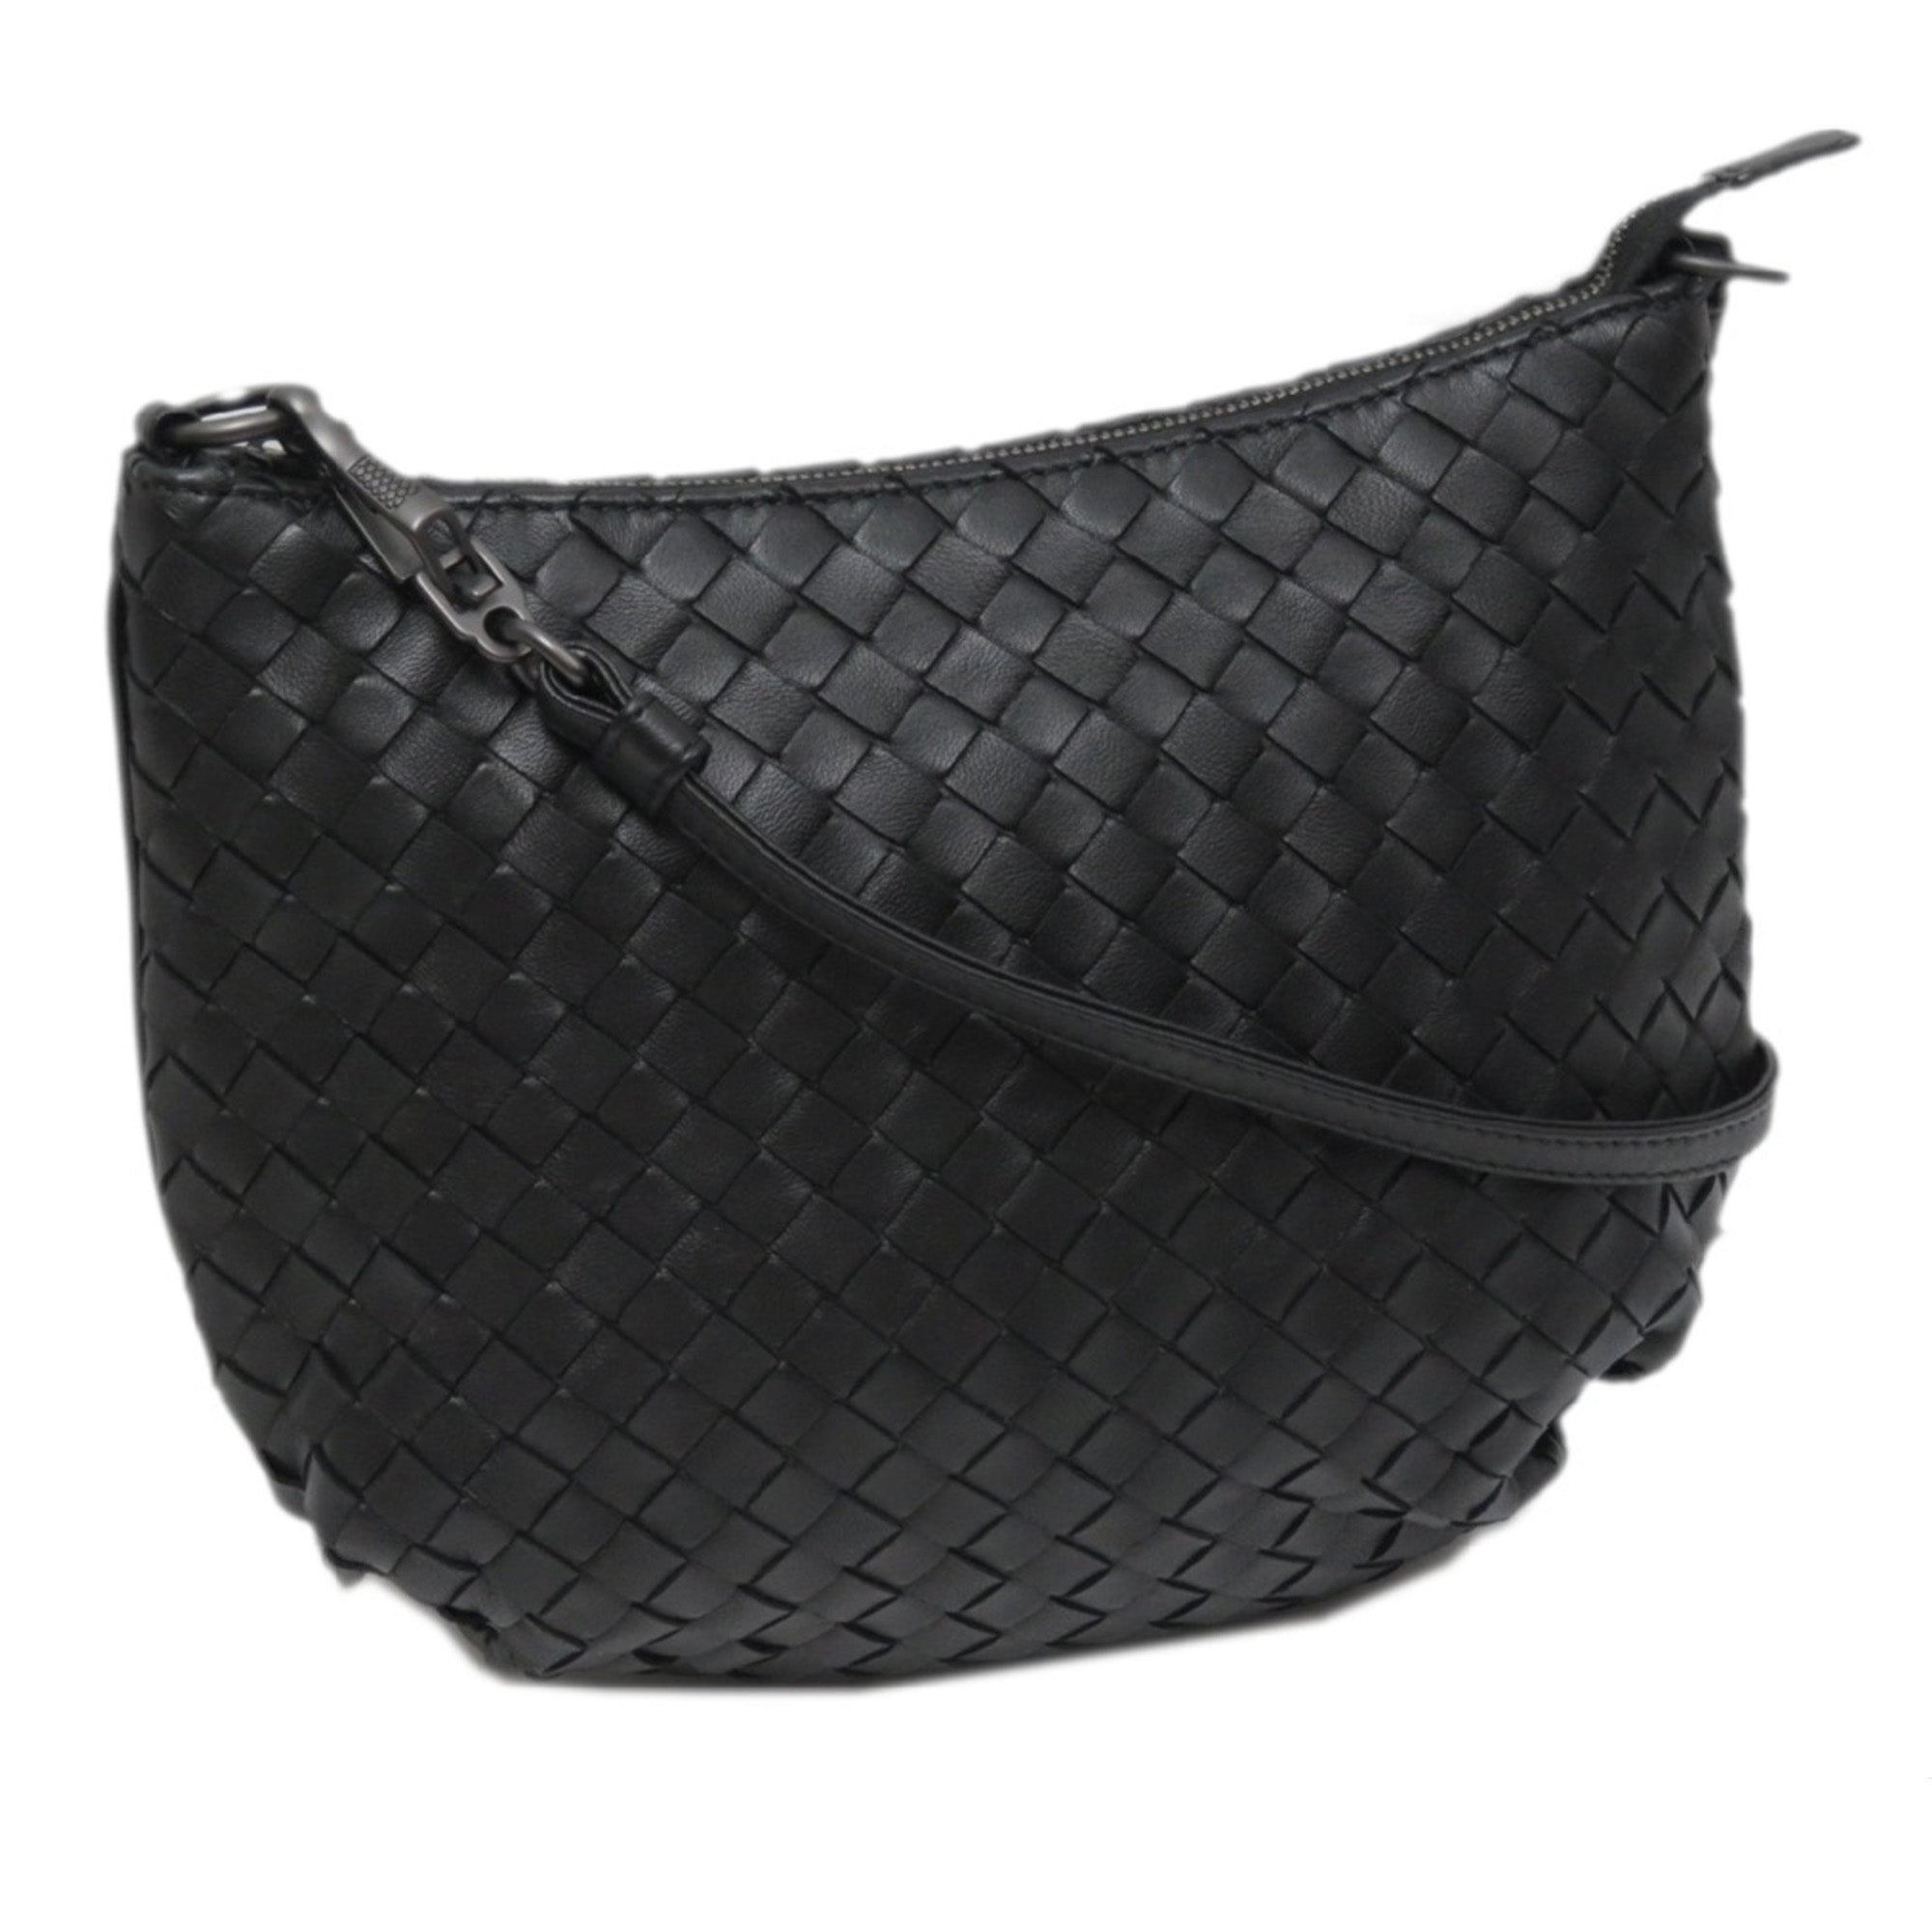 Bottega Veneta Black Intrecciato Leather Shoulder Bag